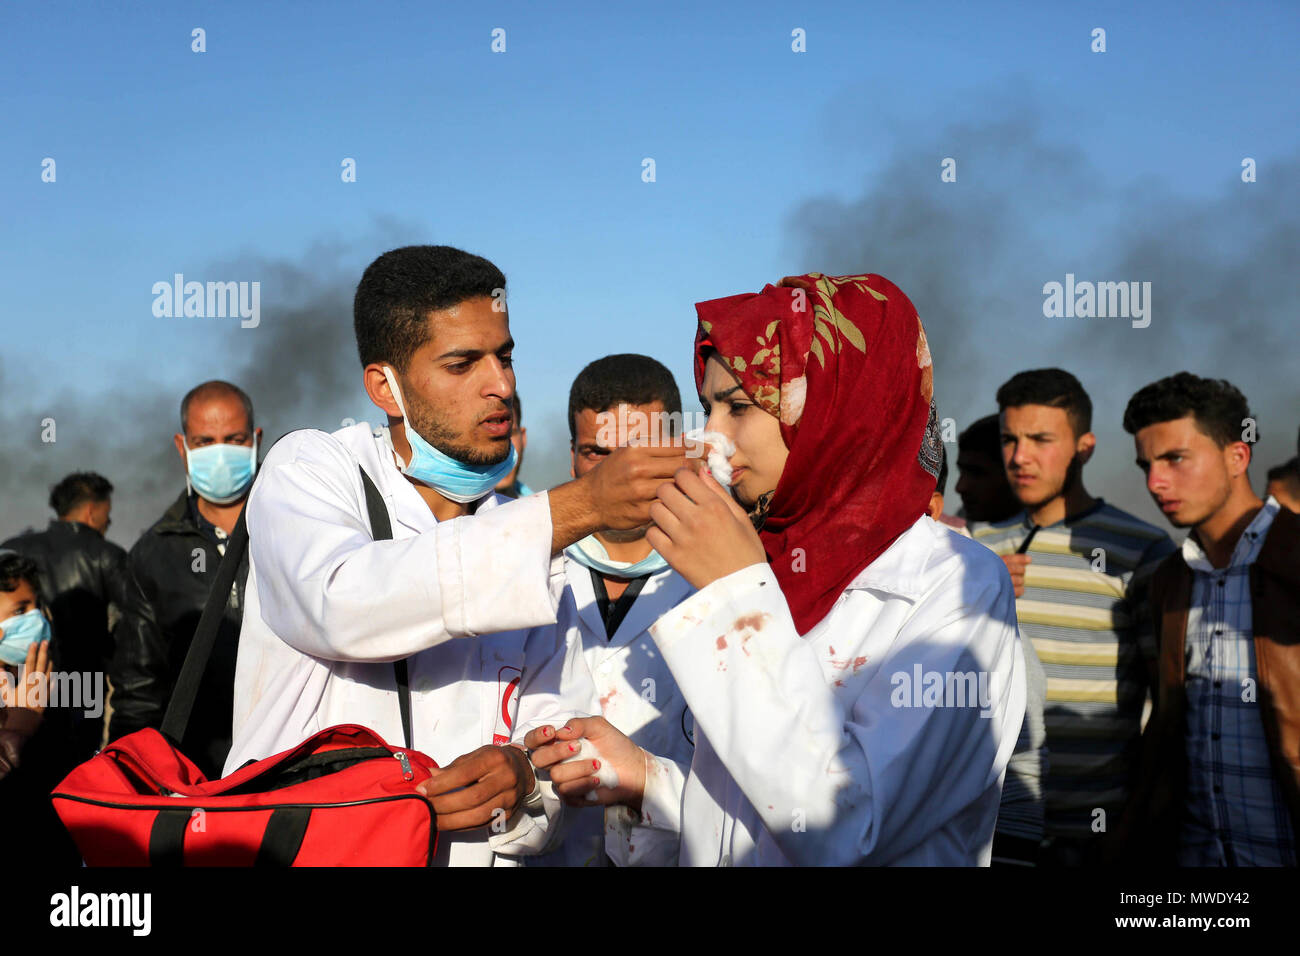 Khan Younis, Gaza Strip, Palestinian Territory. 1st Apr, 2018. (FILES) This file photo taken on April 1, 2018. shows A Palestinian medical Razan al-Najjar tries to cure herself after she was gas inhaled fired by Israeli security forces, who was killed during a protest at the Israel-Gaza border, in Khan Younis in the southern Gaza Strip, on June 1, 2018 Credit: Ashraf Amra/APA Images/ZUMA Wire/Alamy Live News - Stock Image